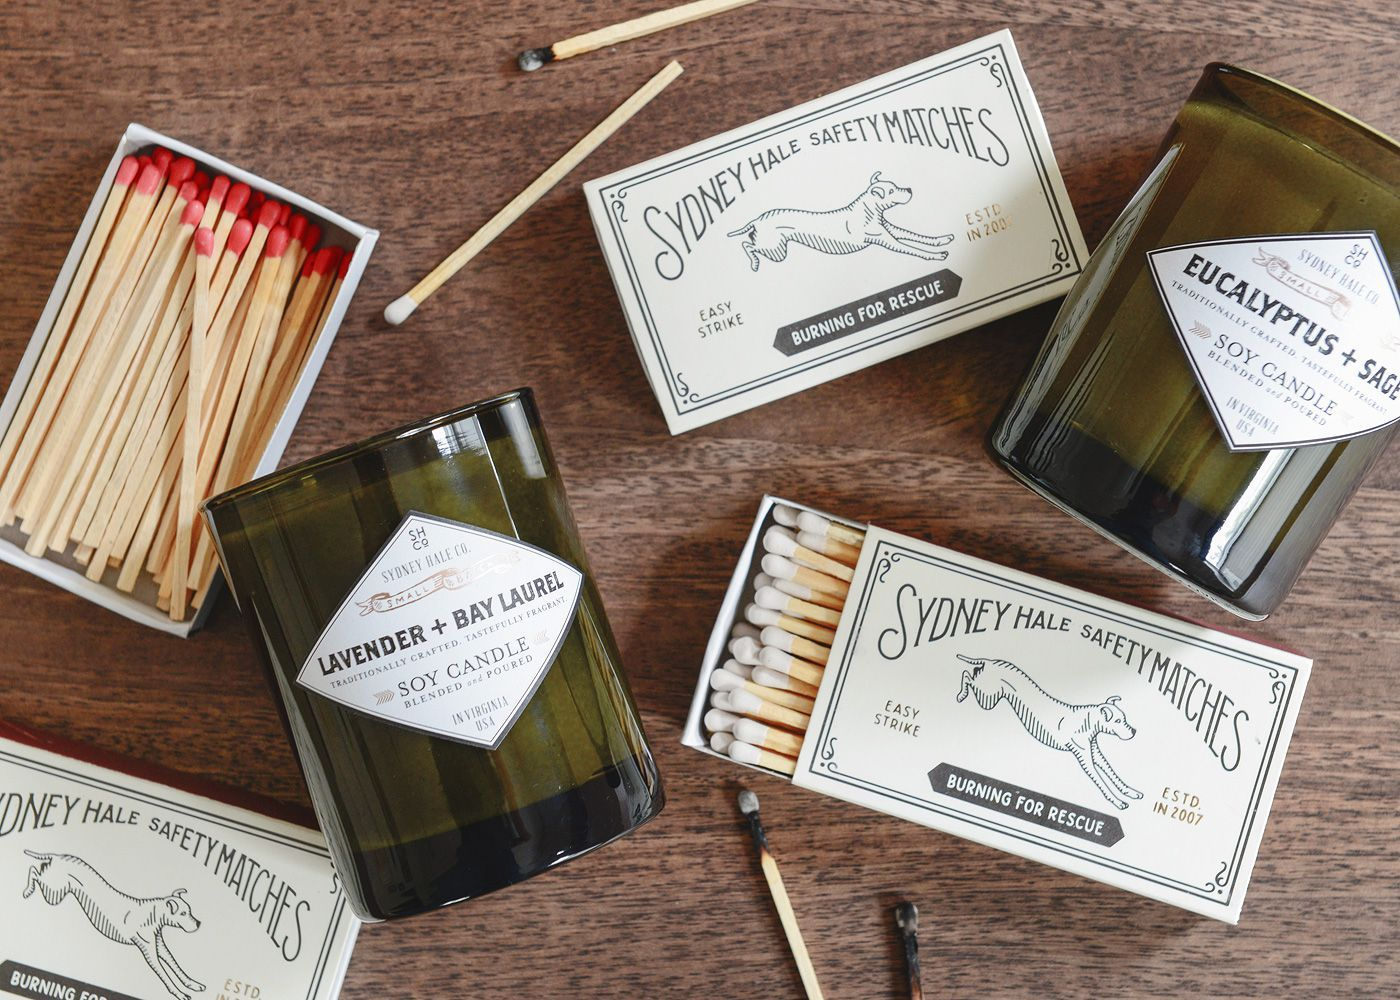 Sydney Hale Co. candles, promoting dog rescue | via Yellow Brick Home